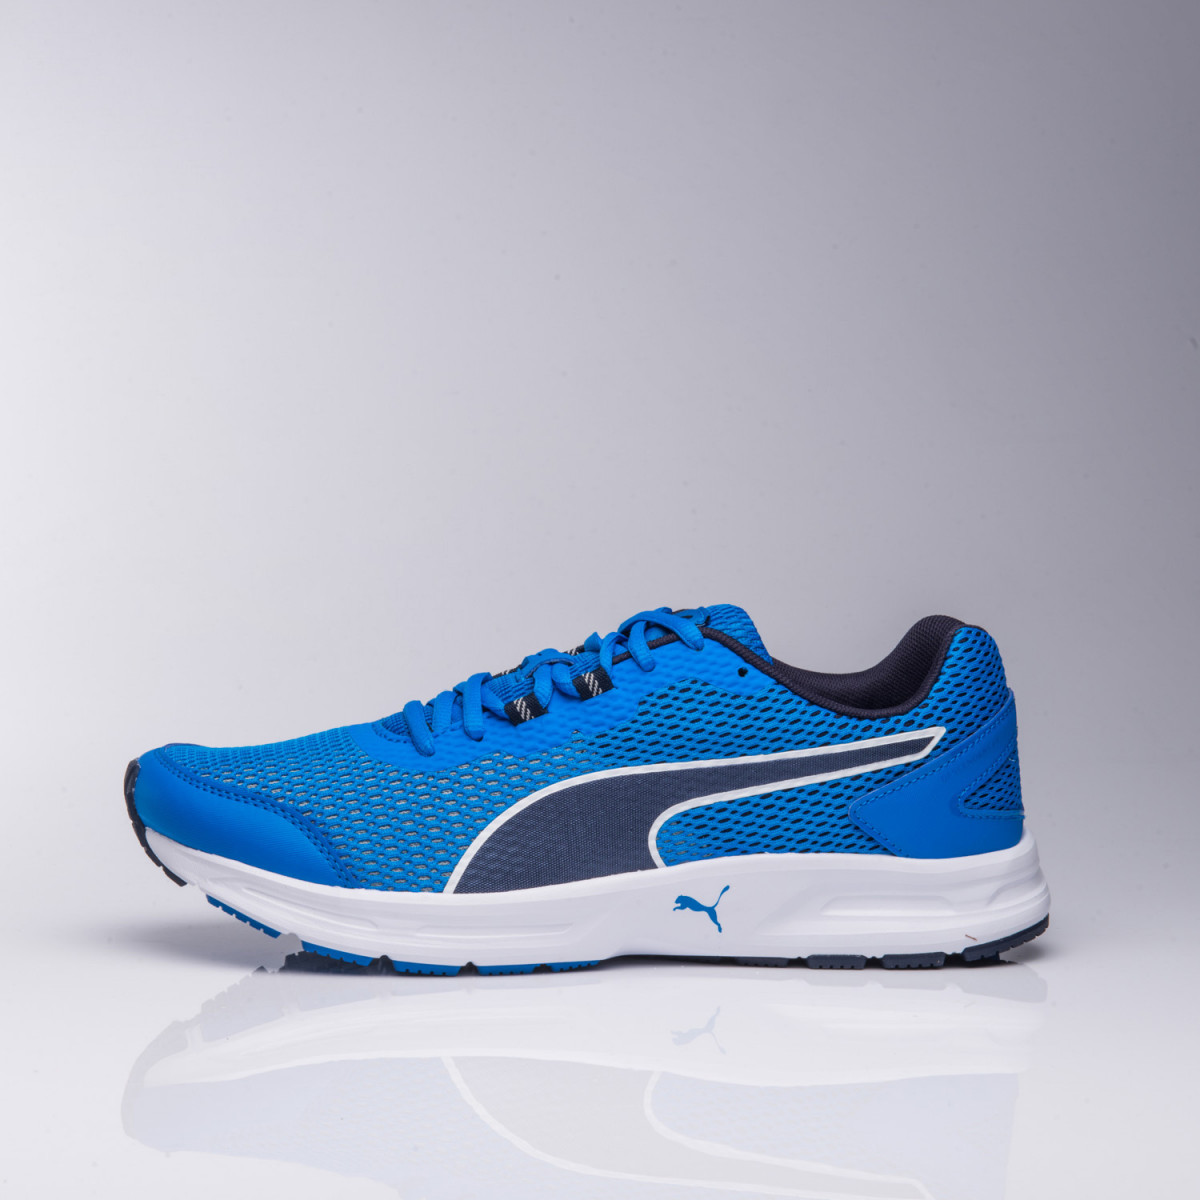 ZAPATILLAS PUMA DESCENDANT V4